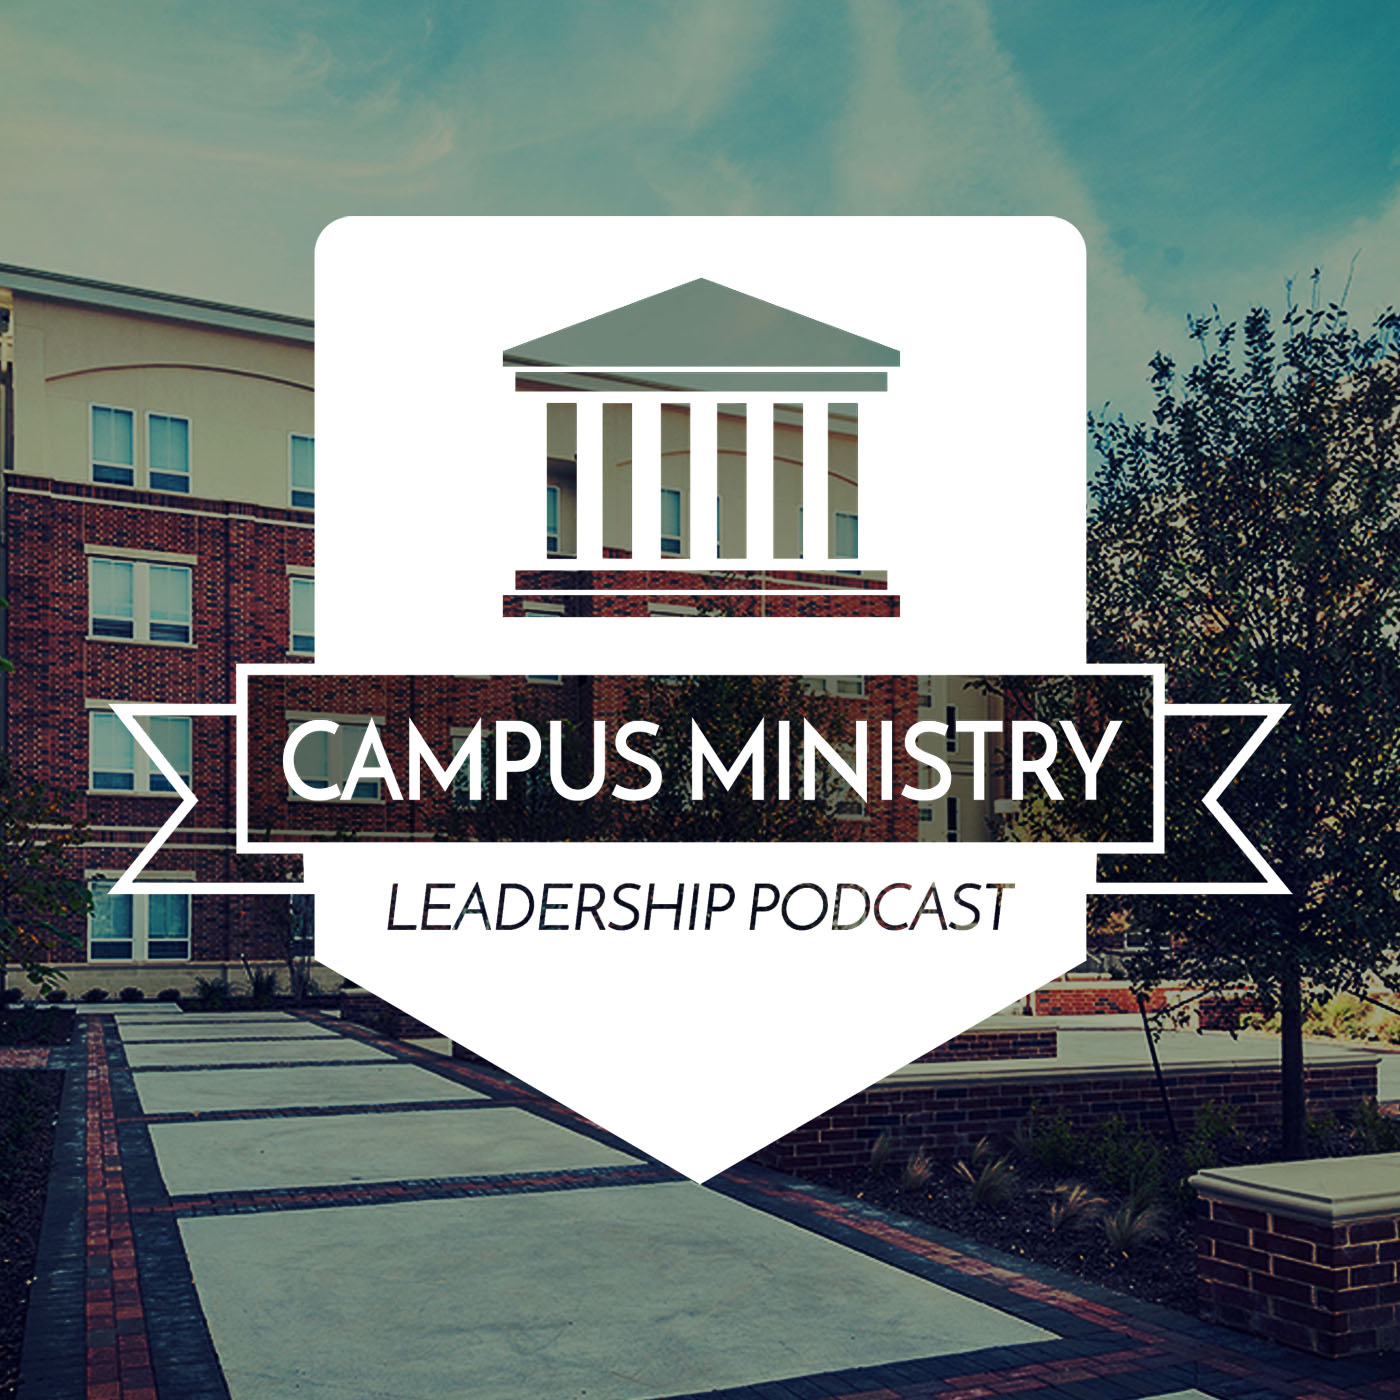 & Campus Ministry Leadership Podcast